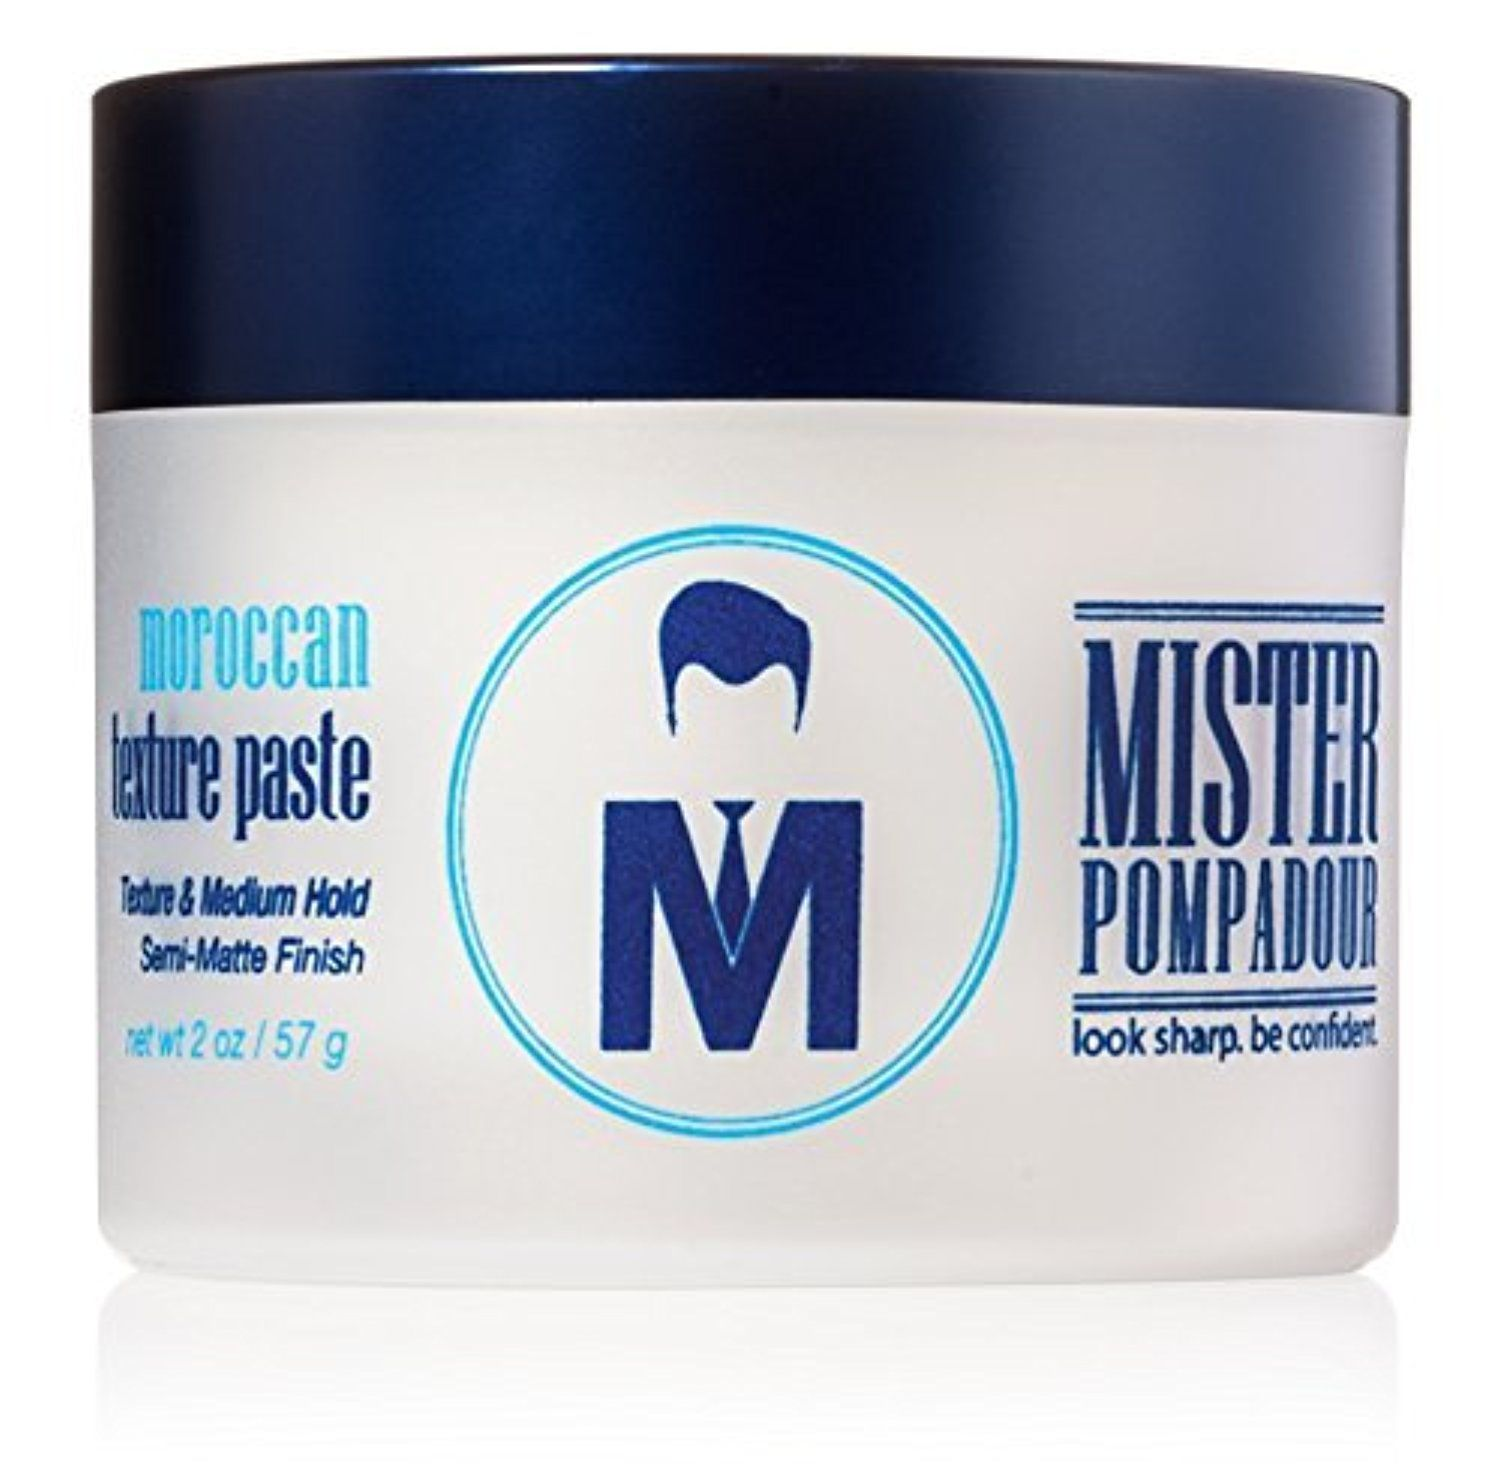 Mister Pompadour Moroccan Texture Paste Best Hair Styling Product For Men And Women 2oz Medium Ho Natural Beeswax Pompadour Curly Hair Styles Naturally